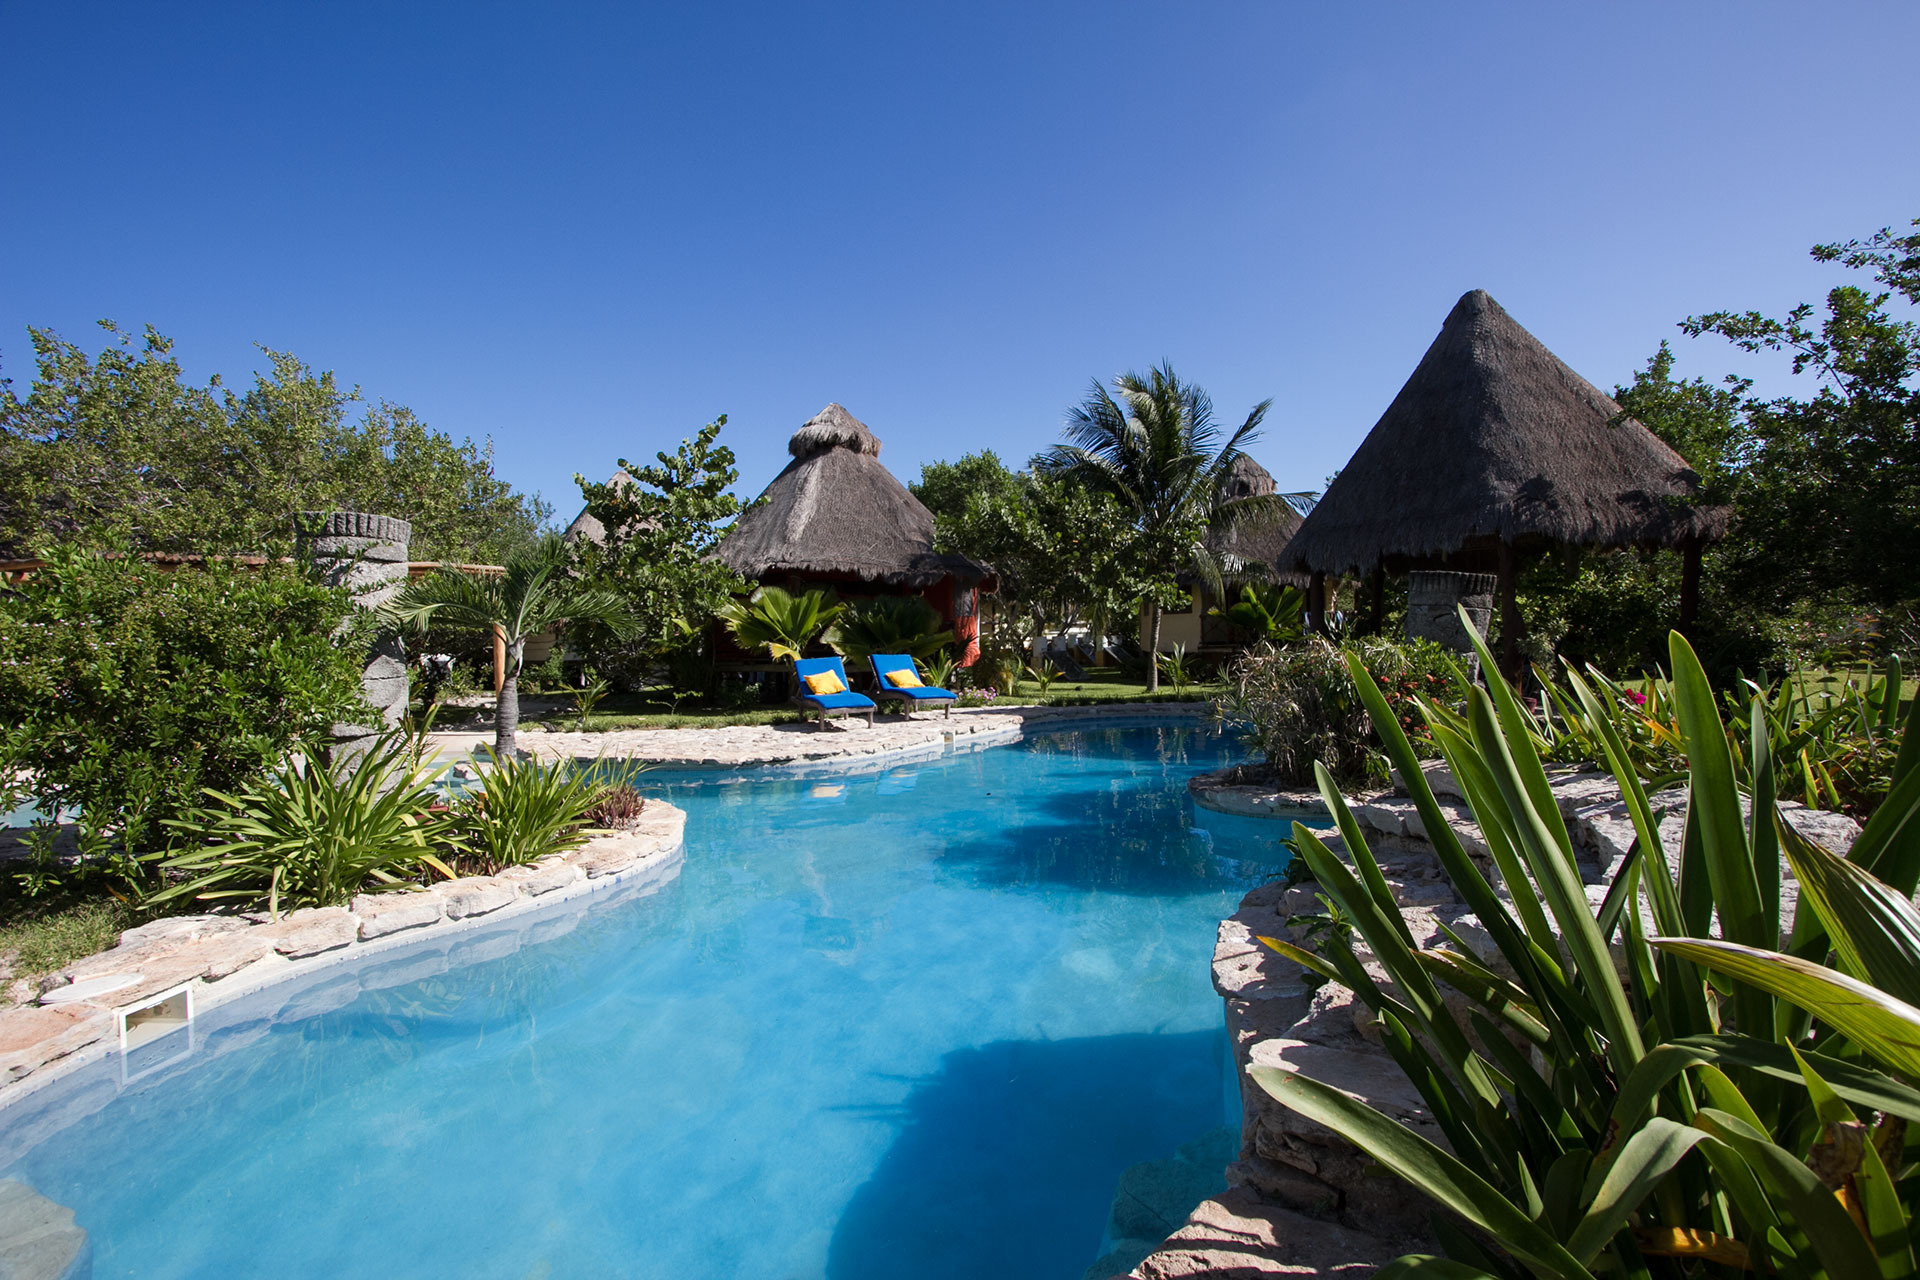 Villas Delfines, Holbox island, the pool